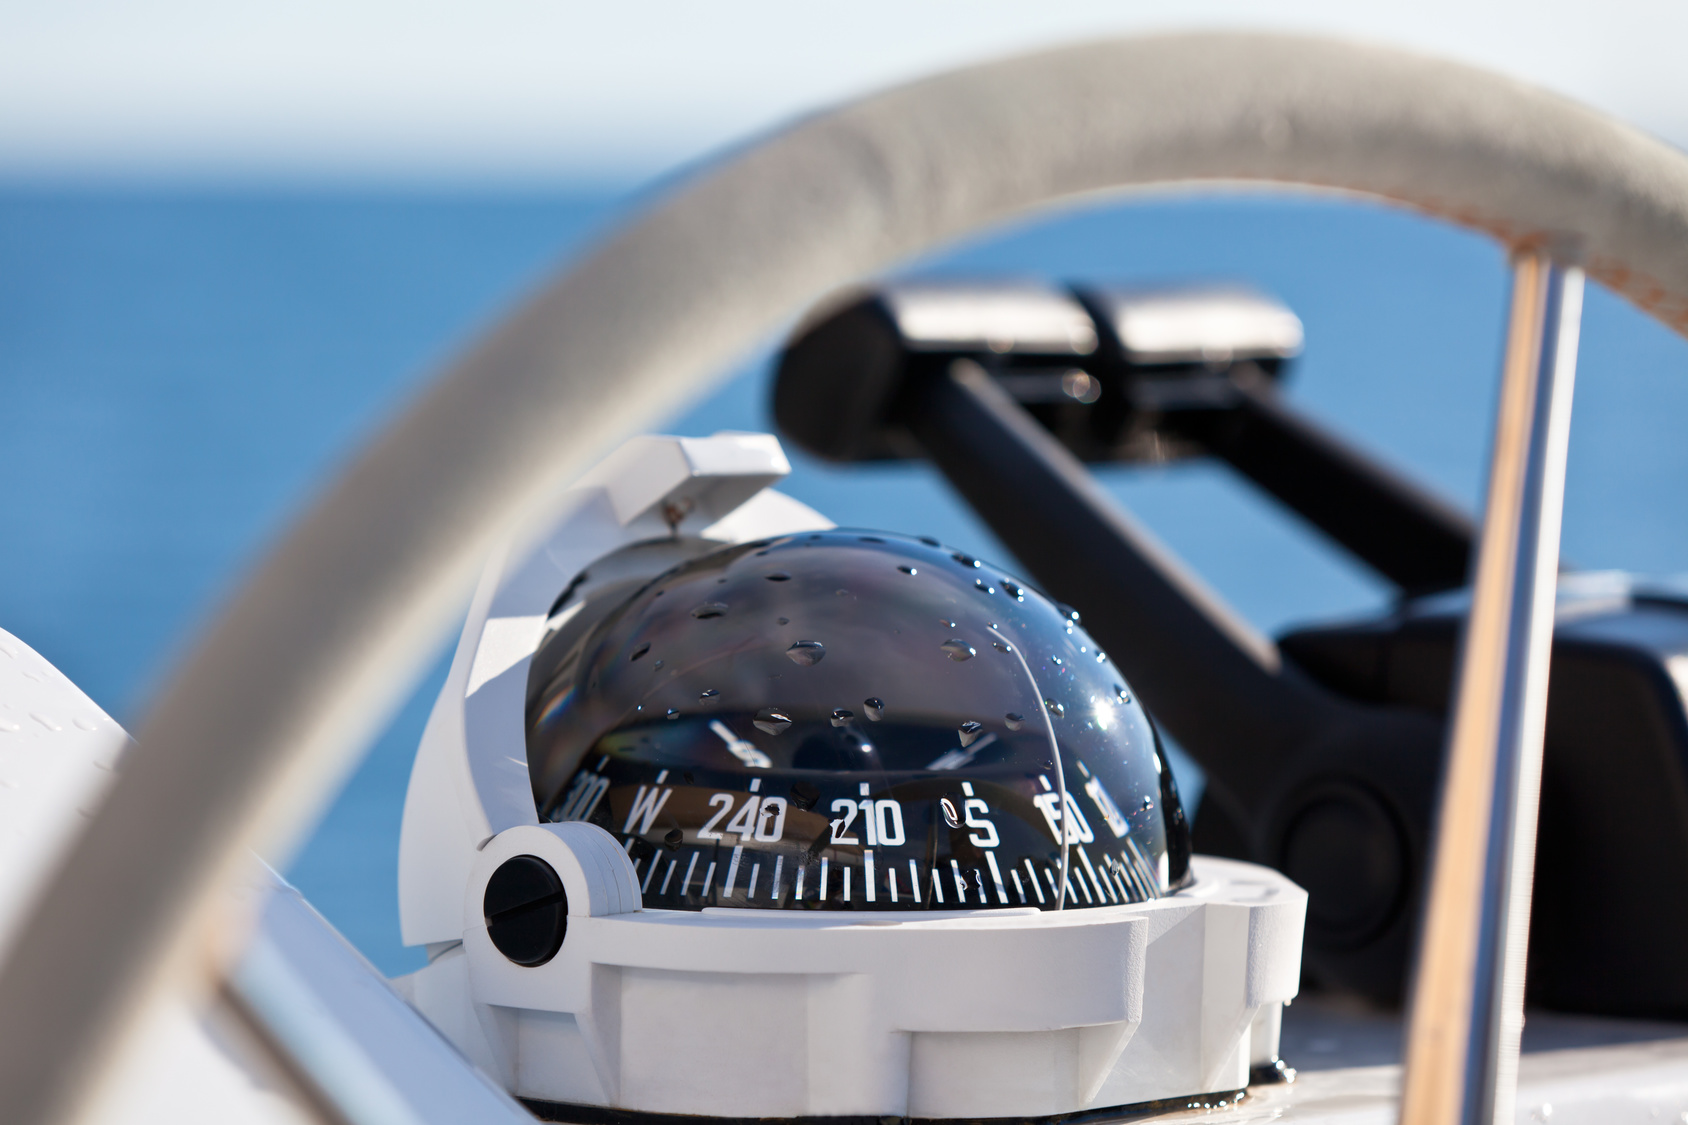 Sailing yacht control wheel and implement. Horizontal shot without people